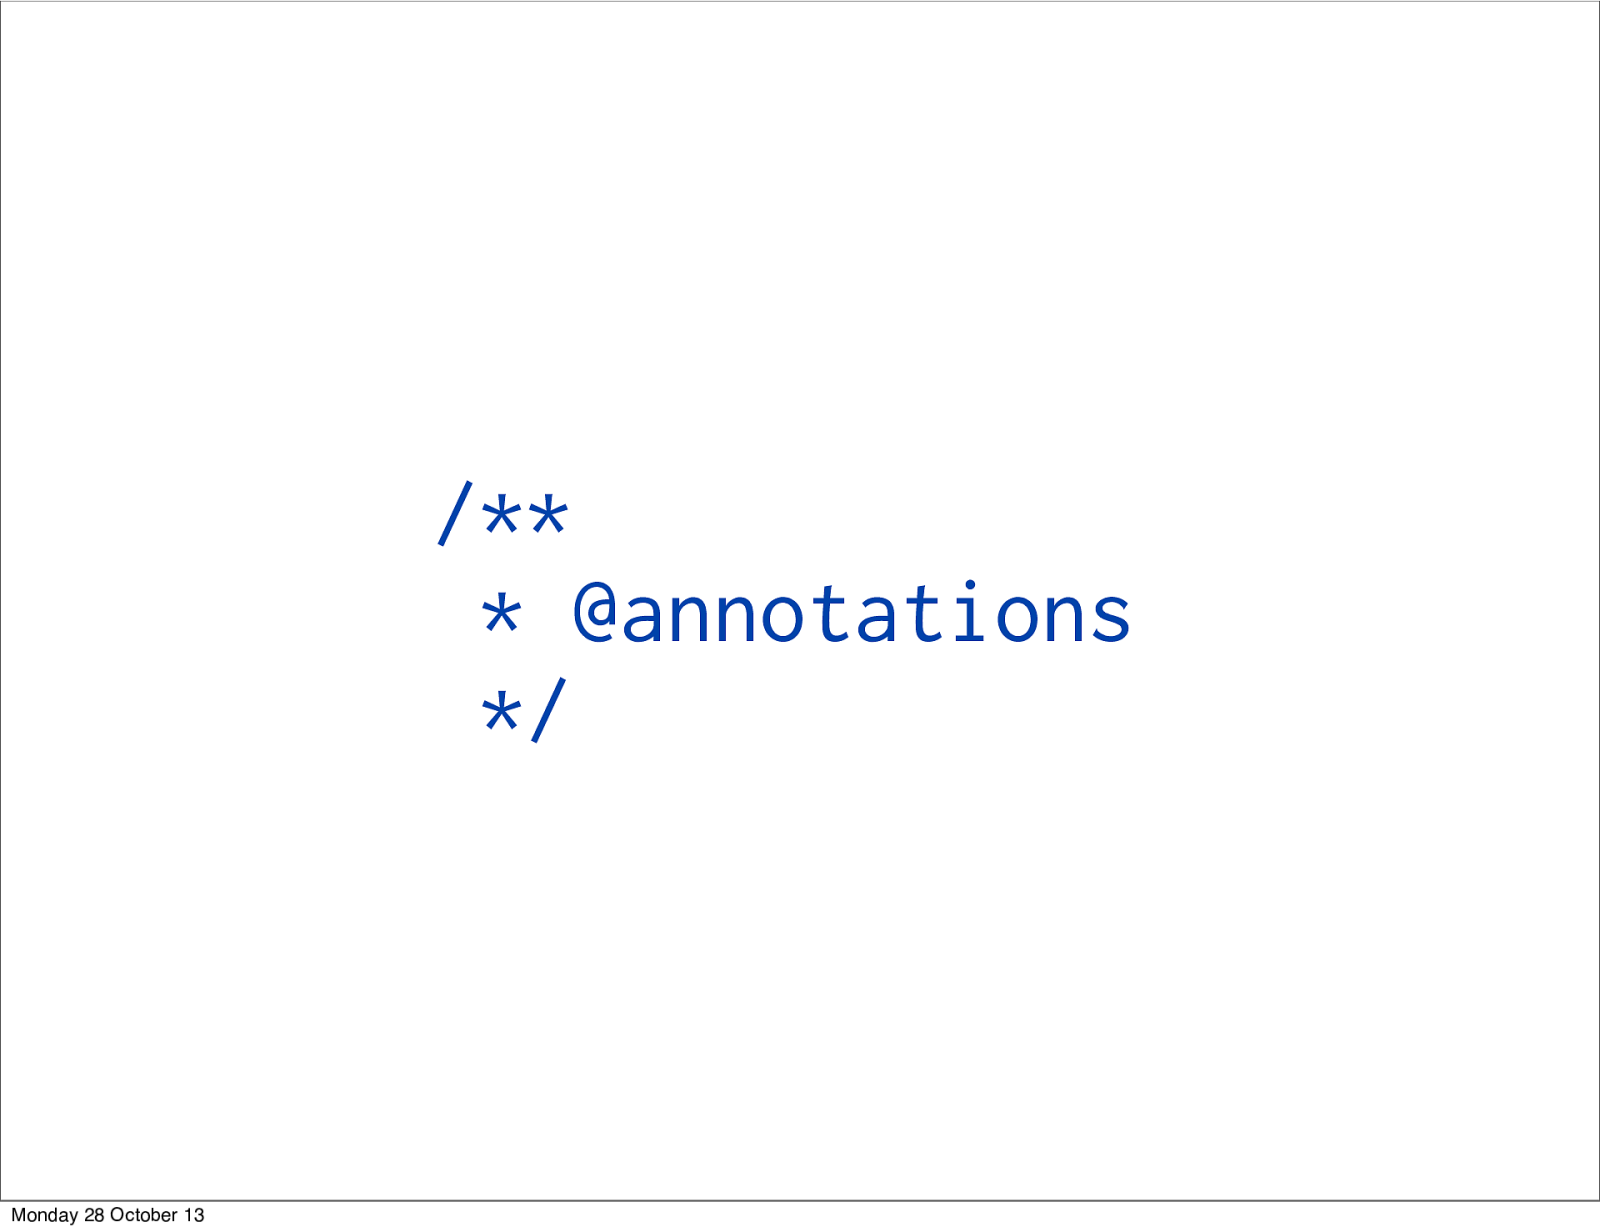 Annotations in PHP